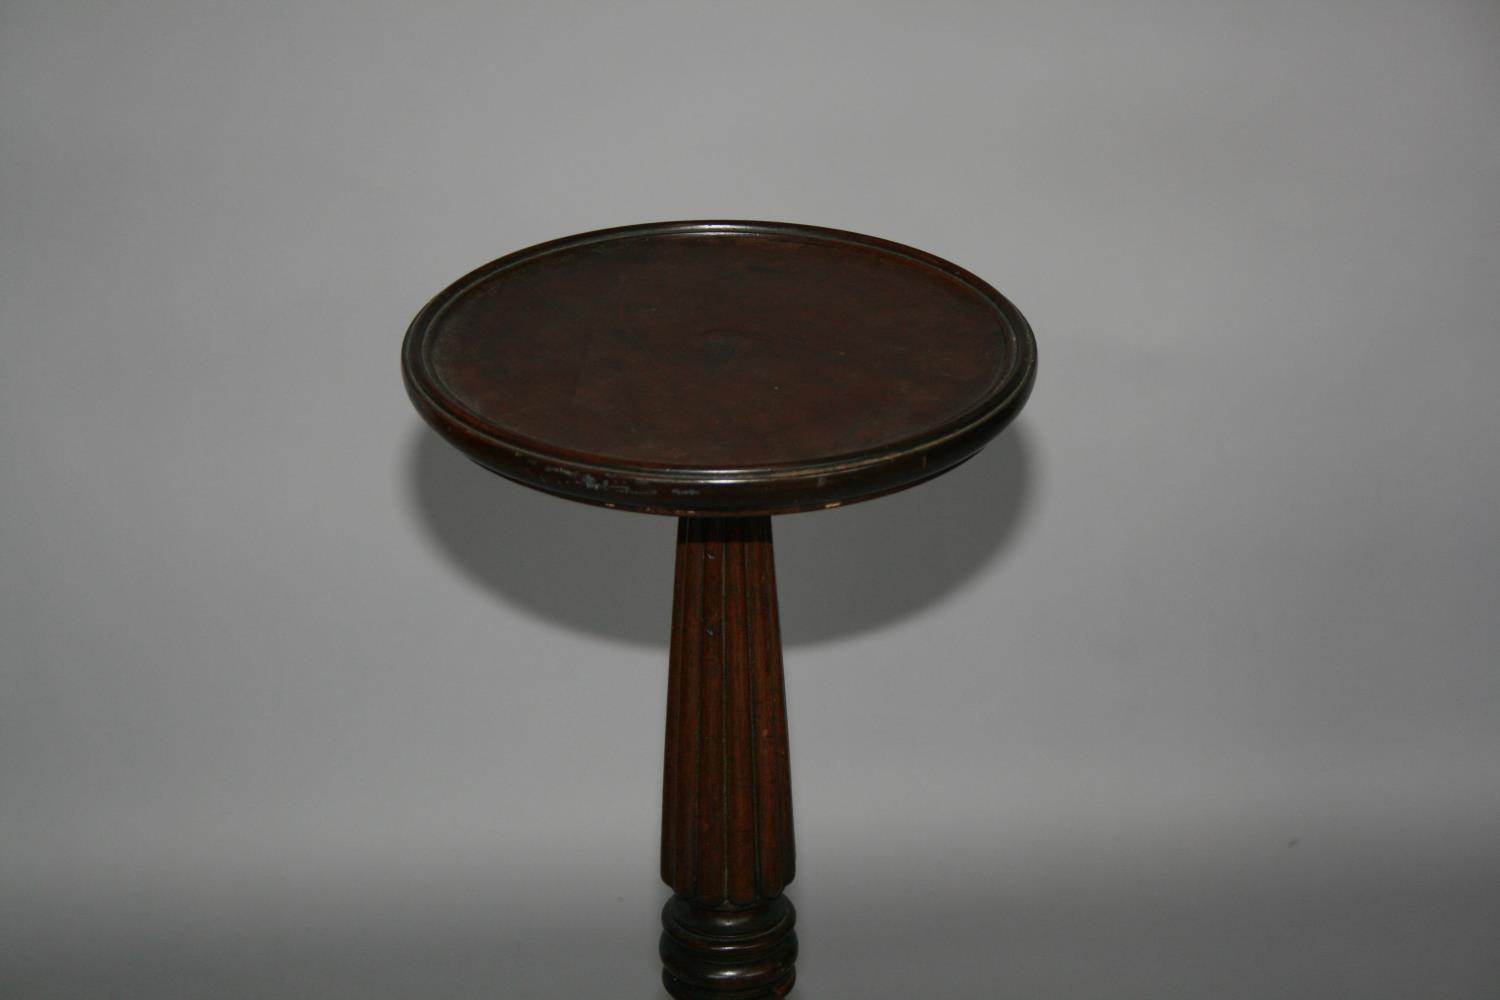 19th Century mahogany torchiere with circular top on tapering support 40 W x 84 H - Image 3 of 3